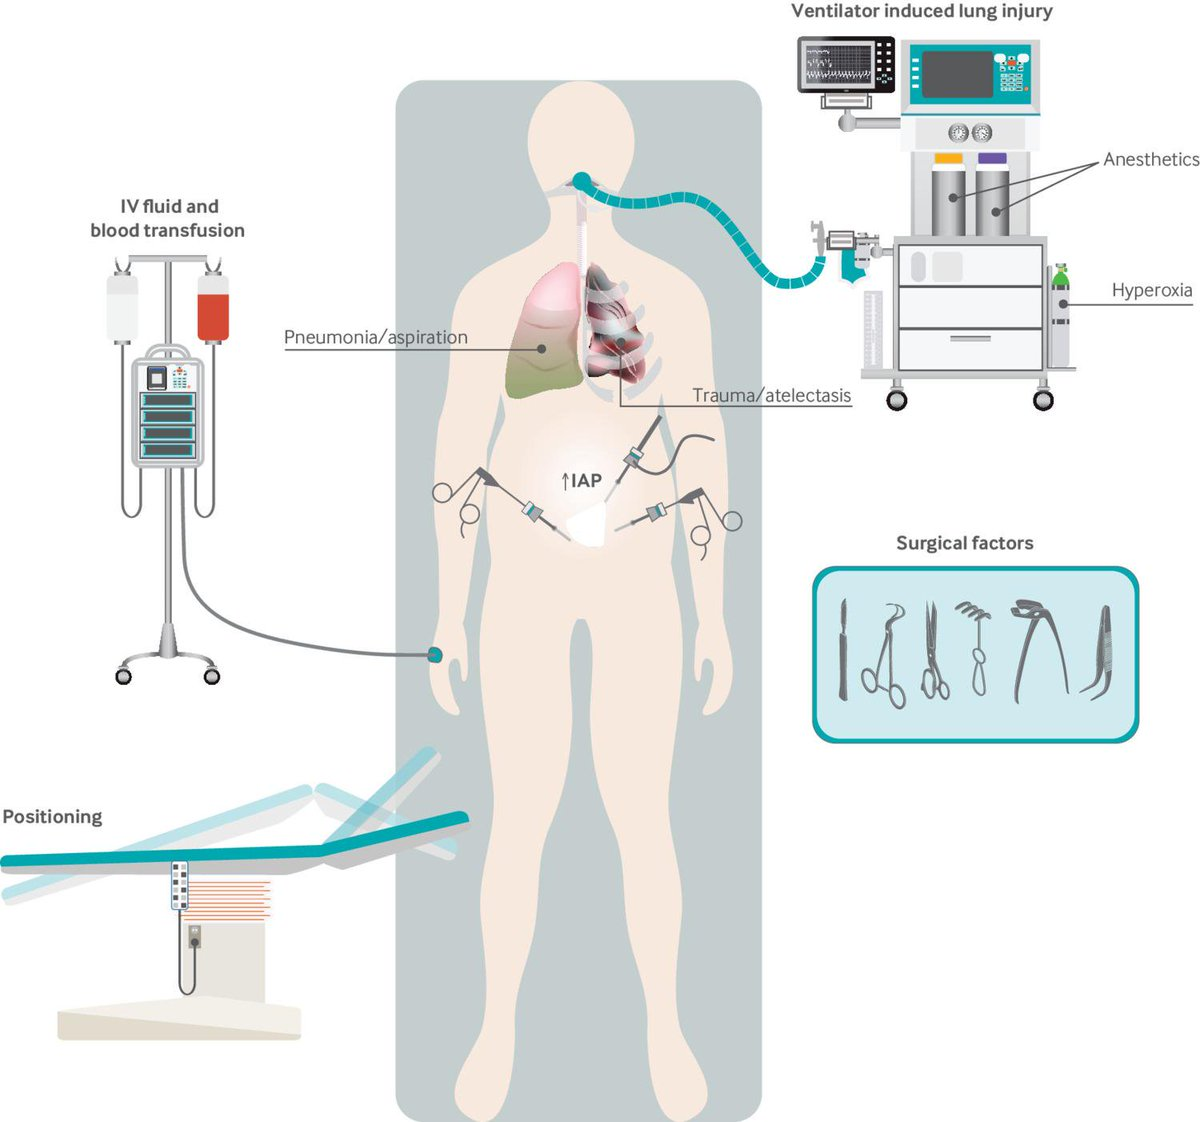 test Twitter Media - Figure showing the risk factors for perioperative lung injury. What are the forms of perioperative lung injury and the strategies to prevent it? #BMJEducation article explains #MedEd https://t.co/wTy3ADvQ3U https://t.co/CGNrBjnedf